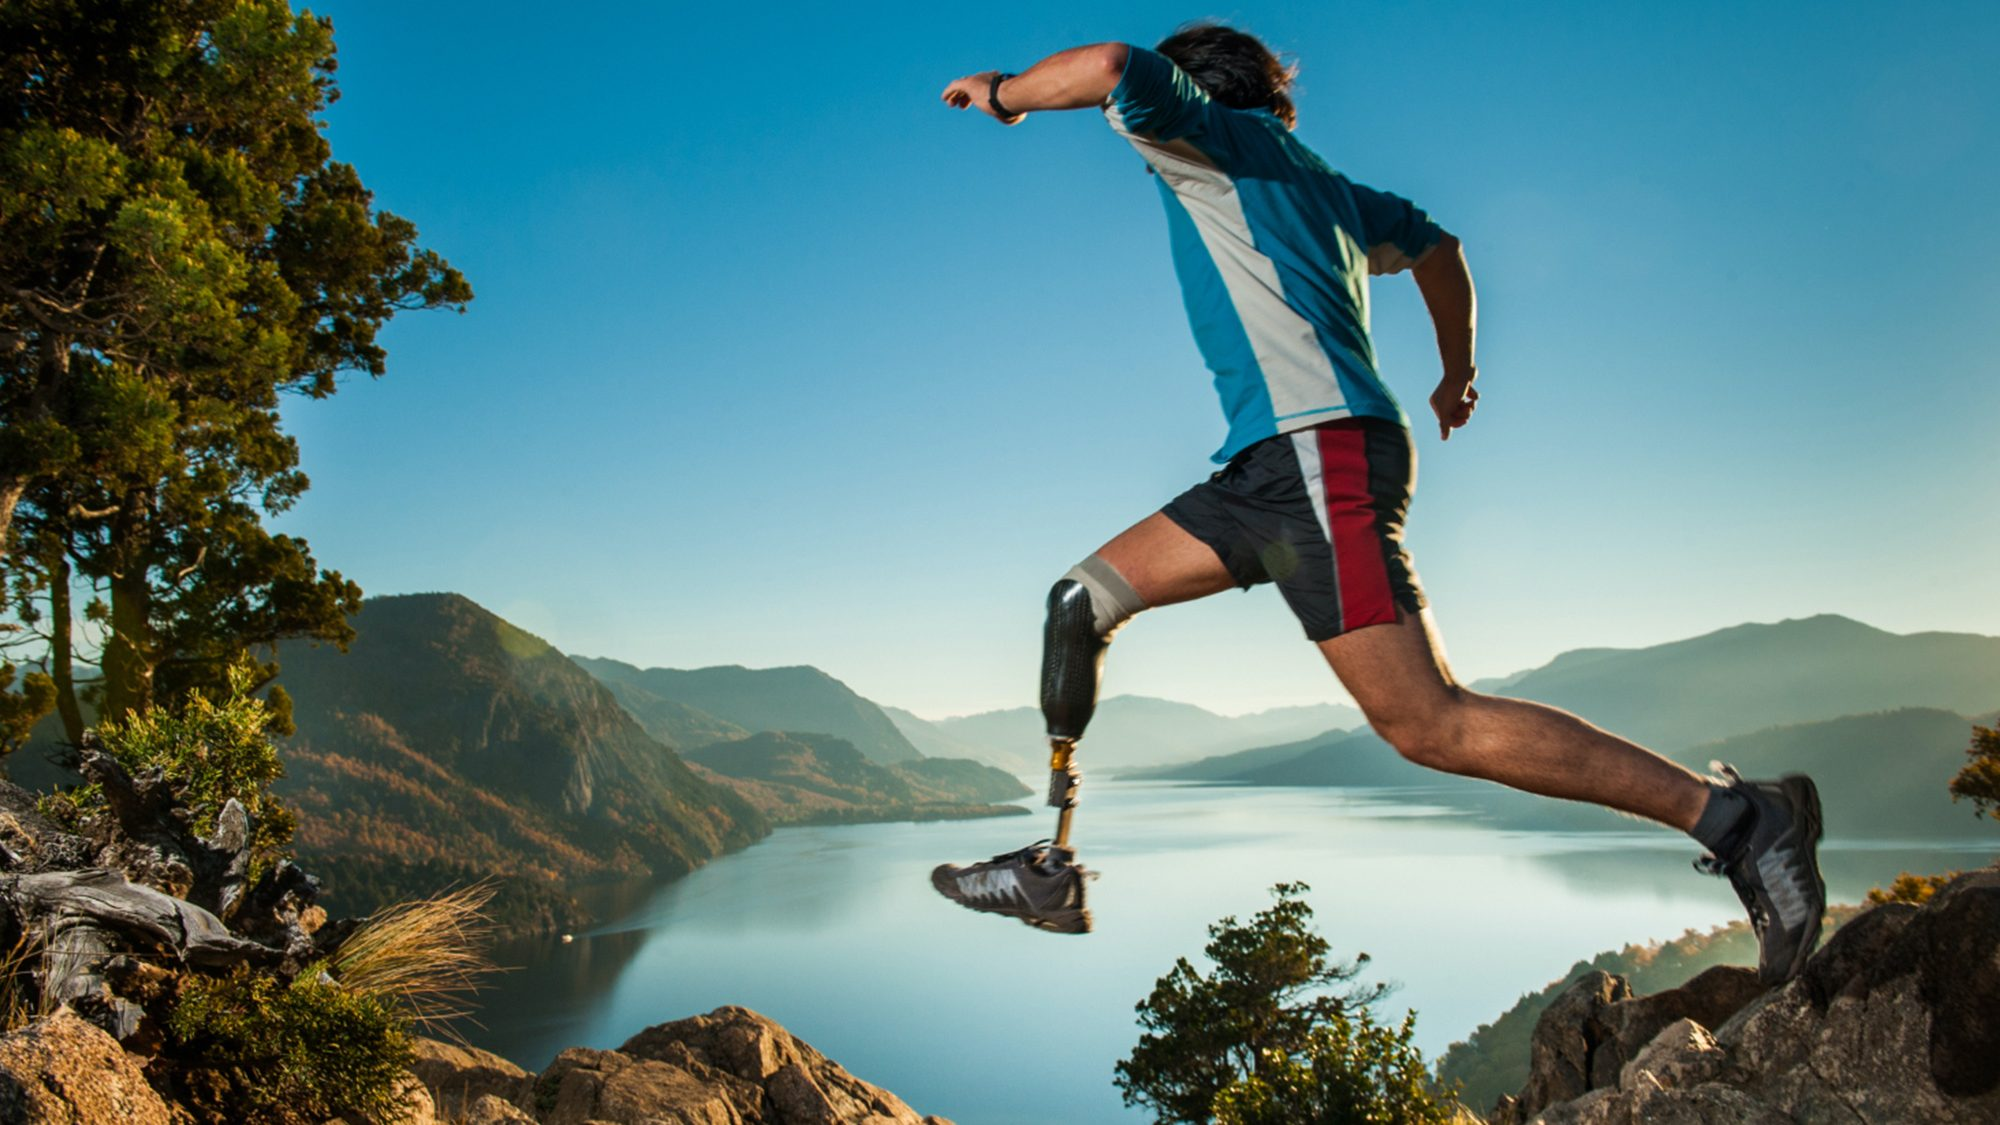 Man with a prosthetic leg running in a wild landscape.